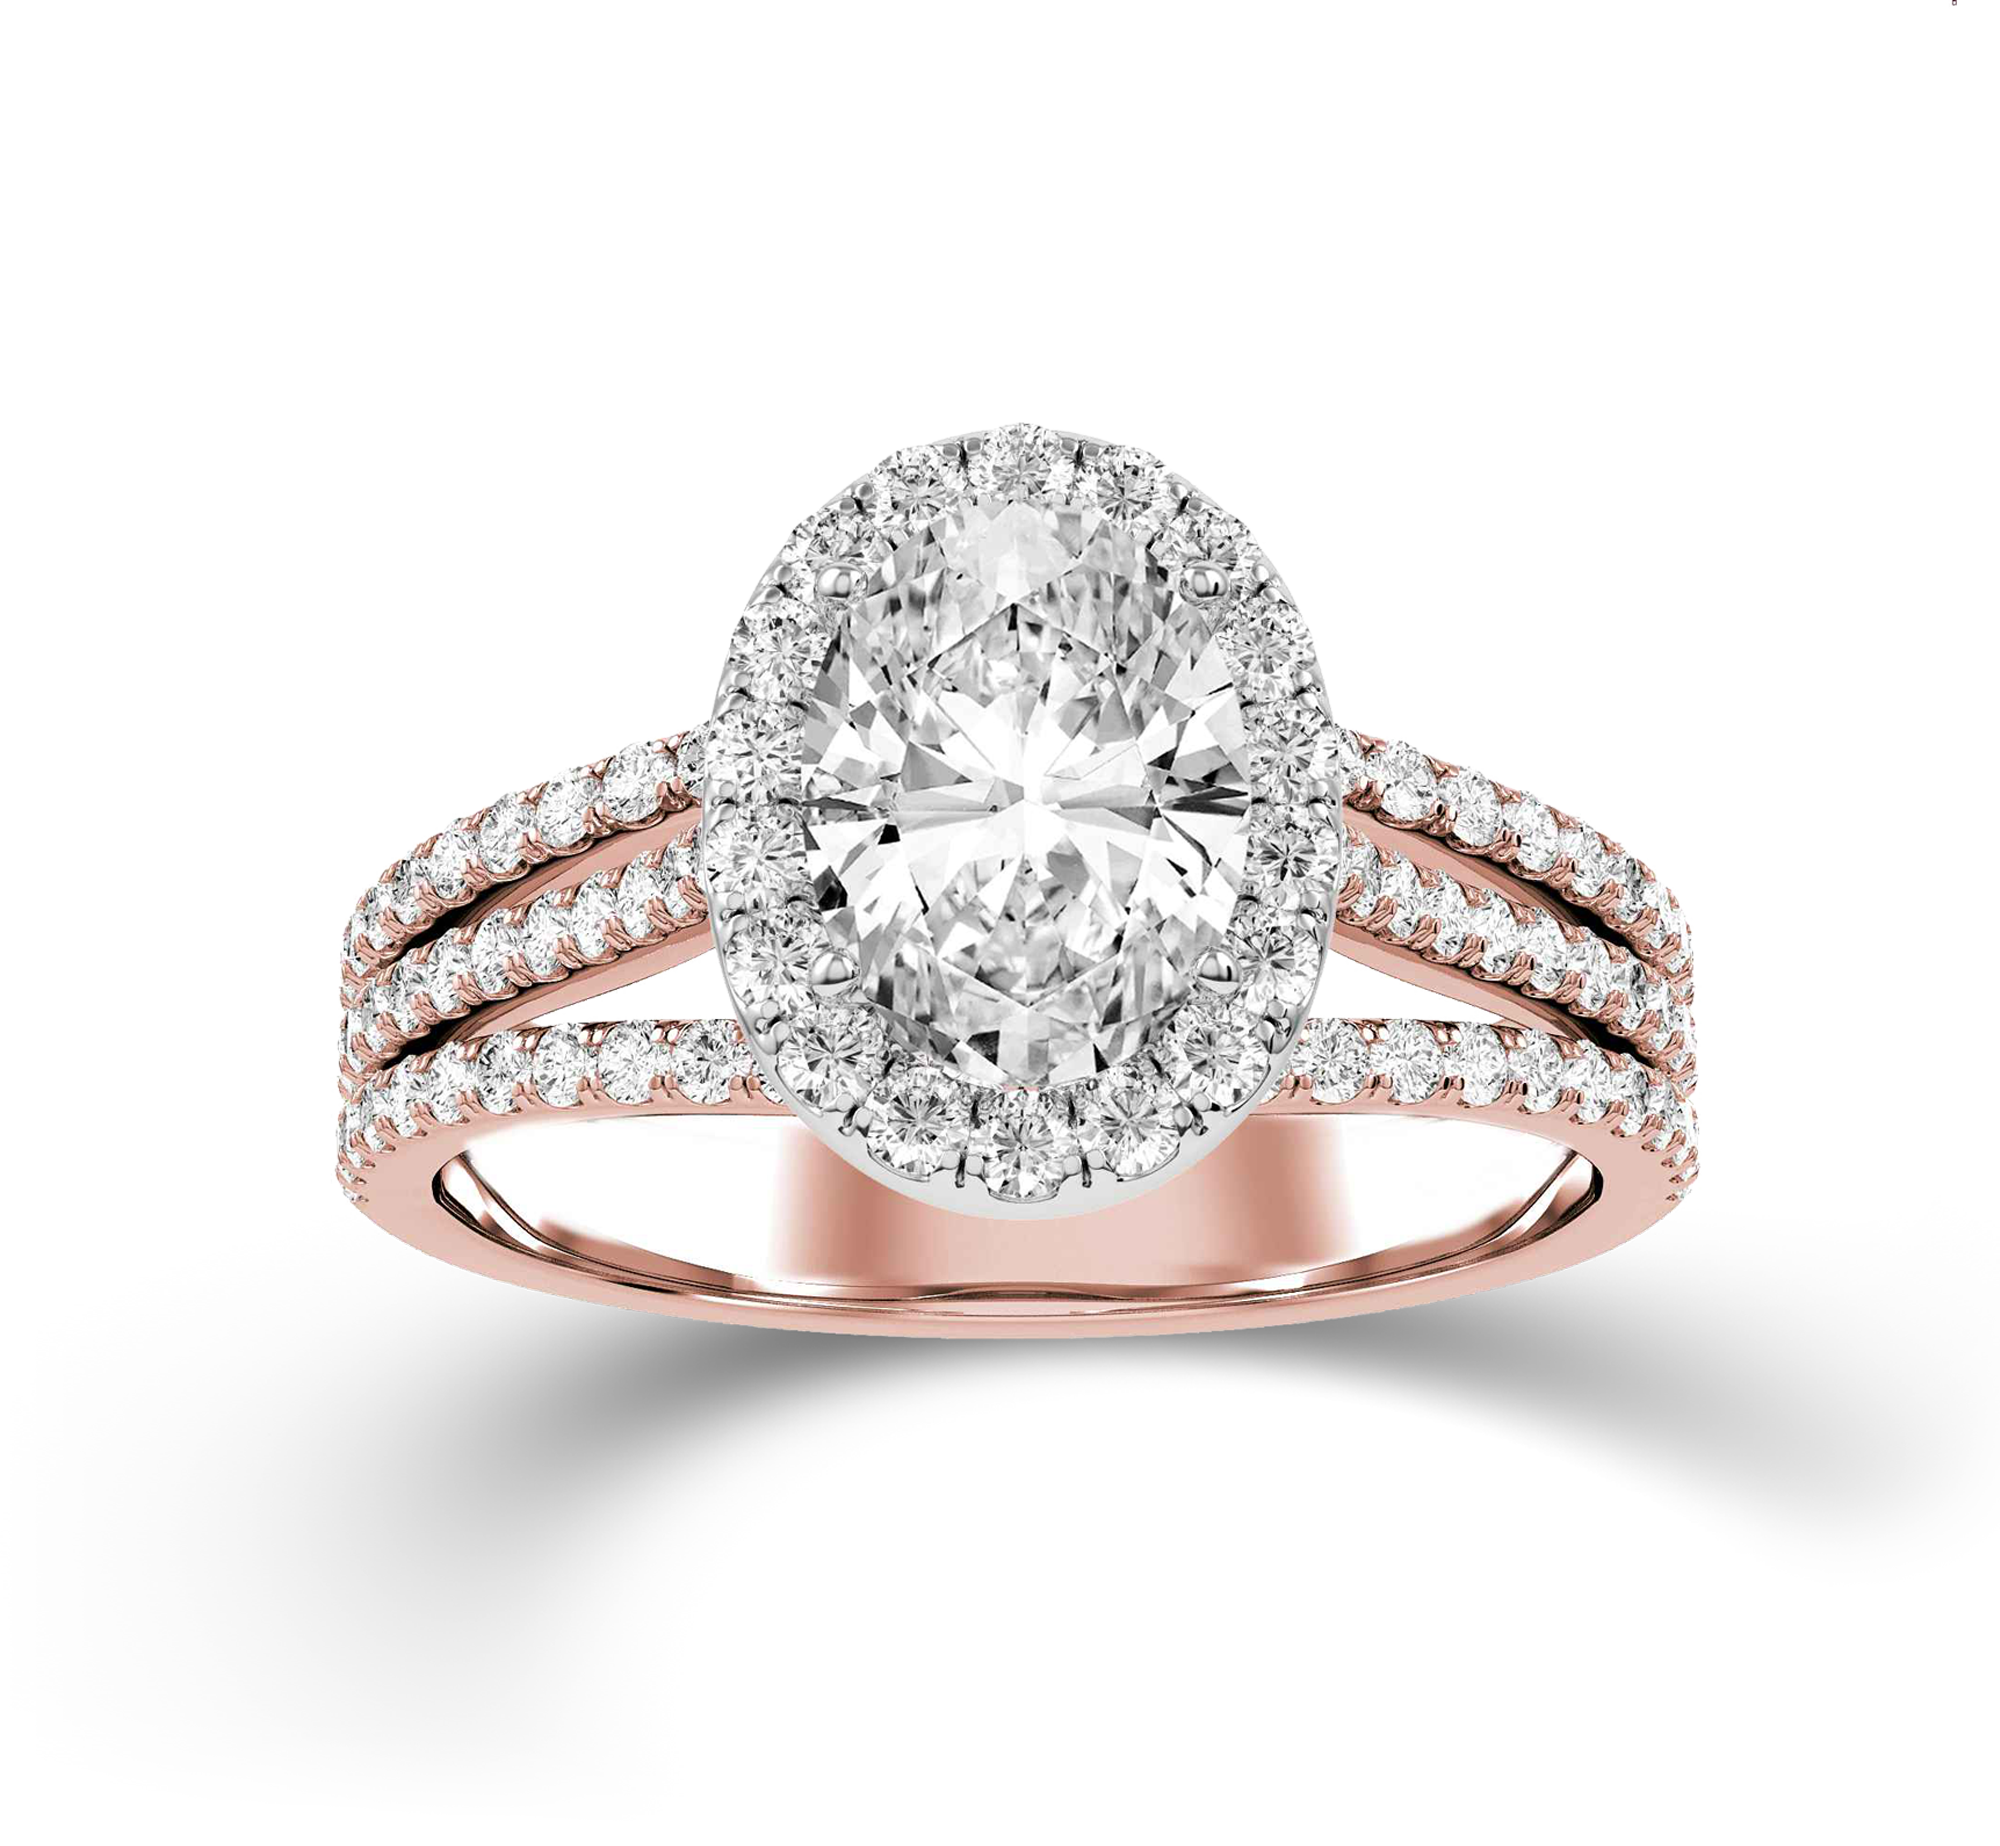 Craft the ring of your dreams. Ring Image